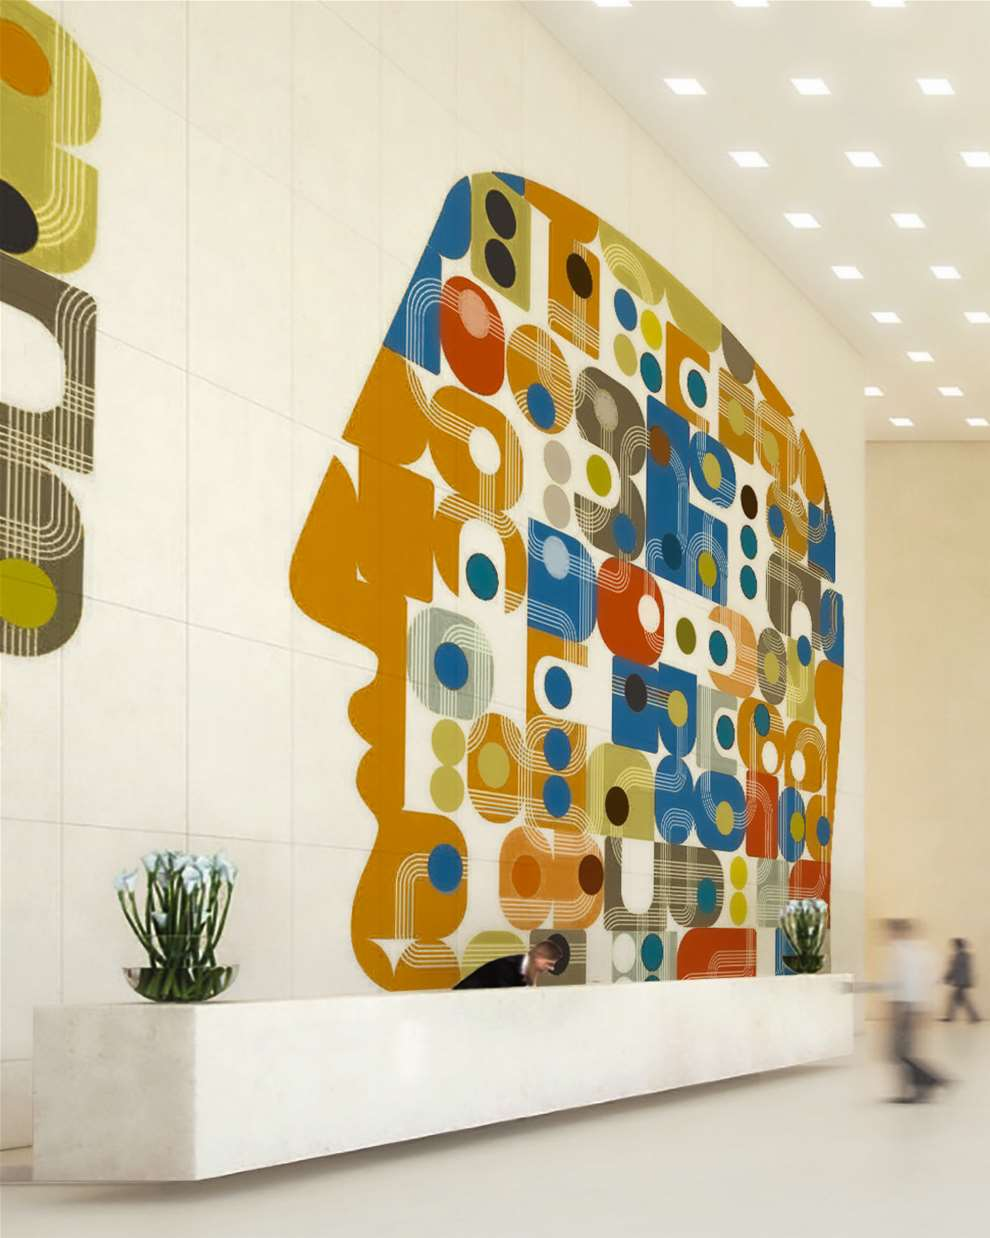 Paul Wearing, Large scale Mural Art in situ of a series of geometric shapes making up a side profile of a man's head.